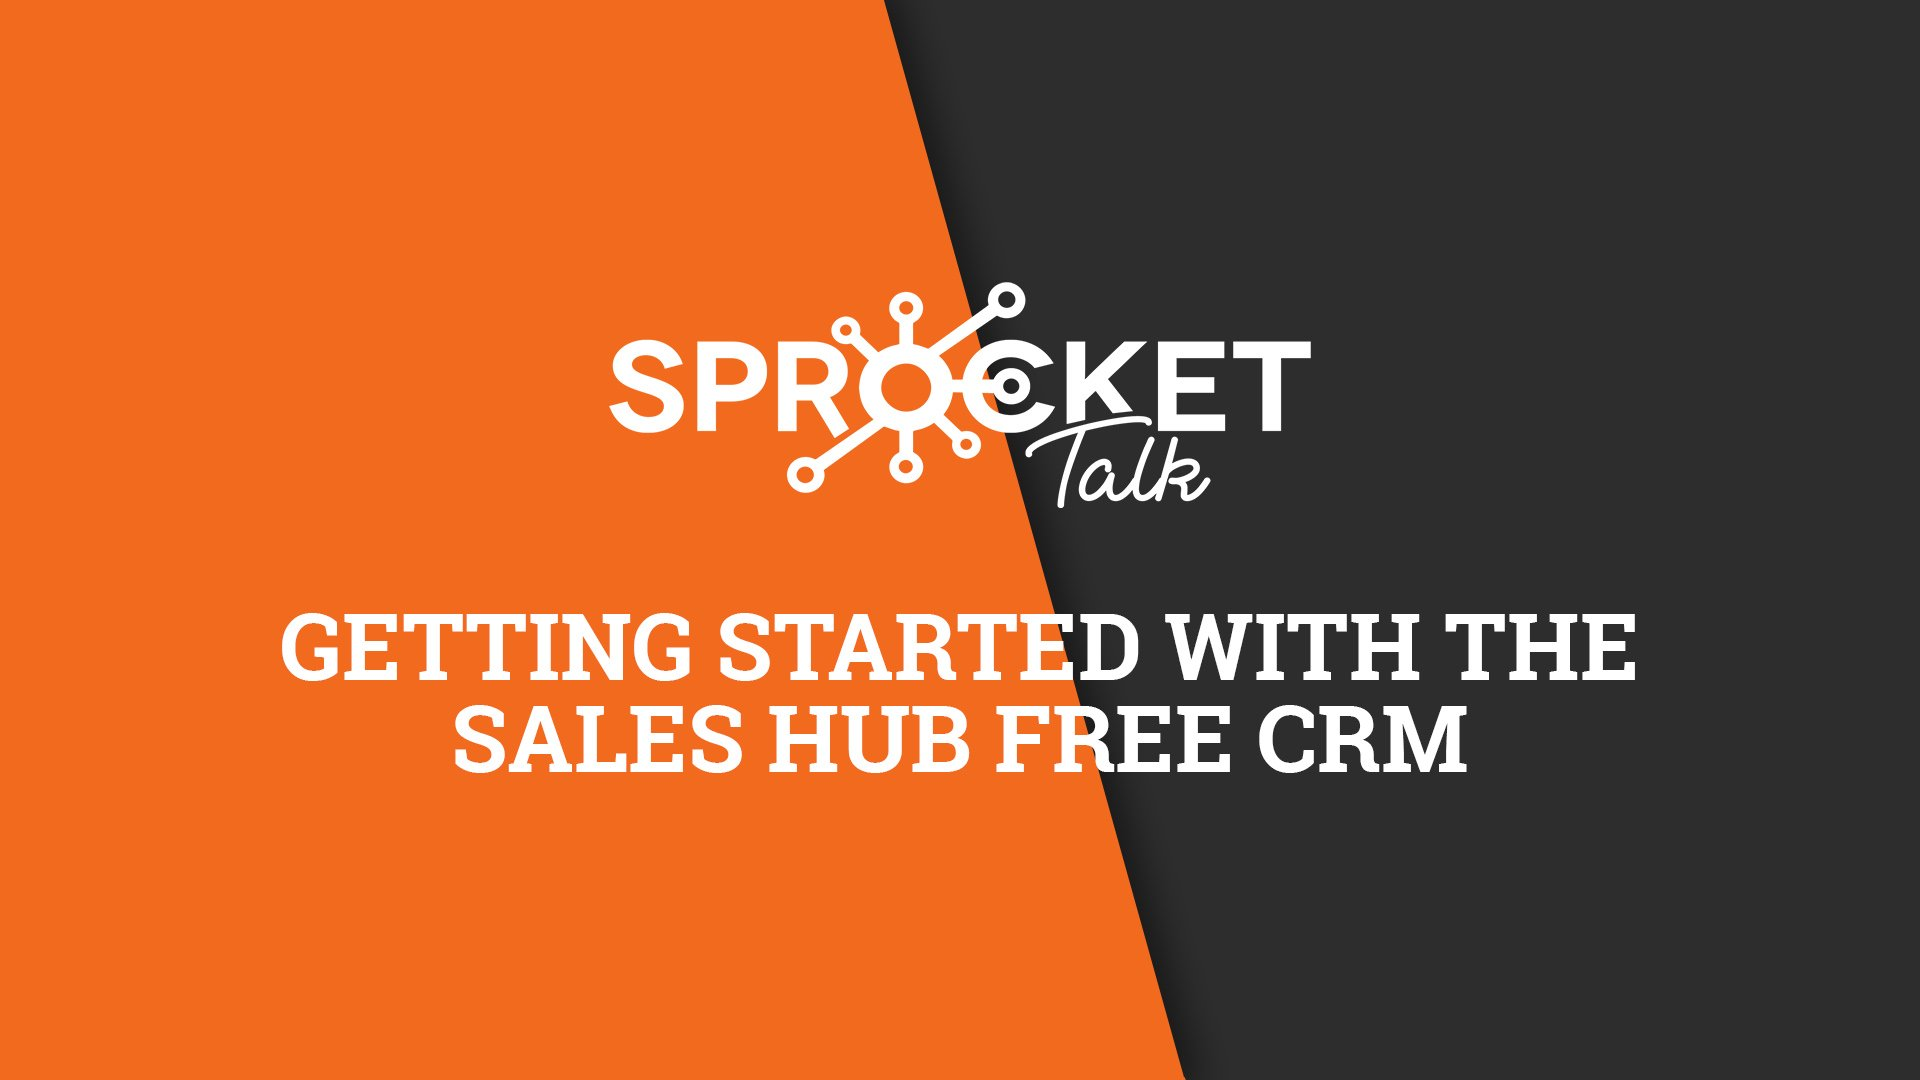 Getting Started With The Sales Hub Free CRM